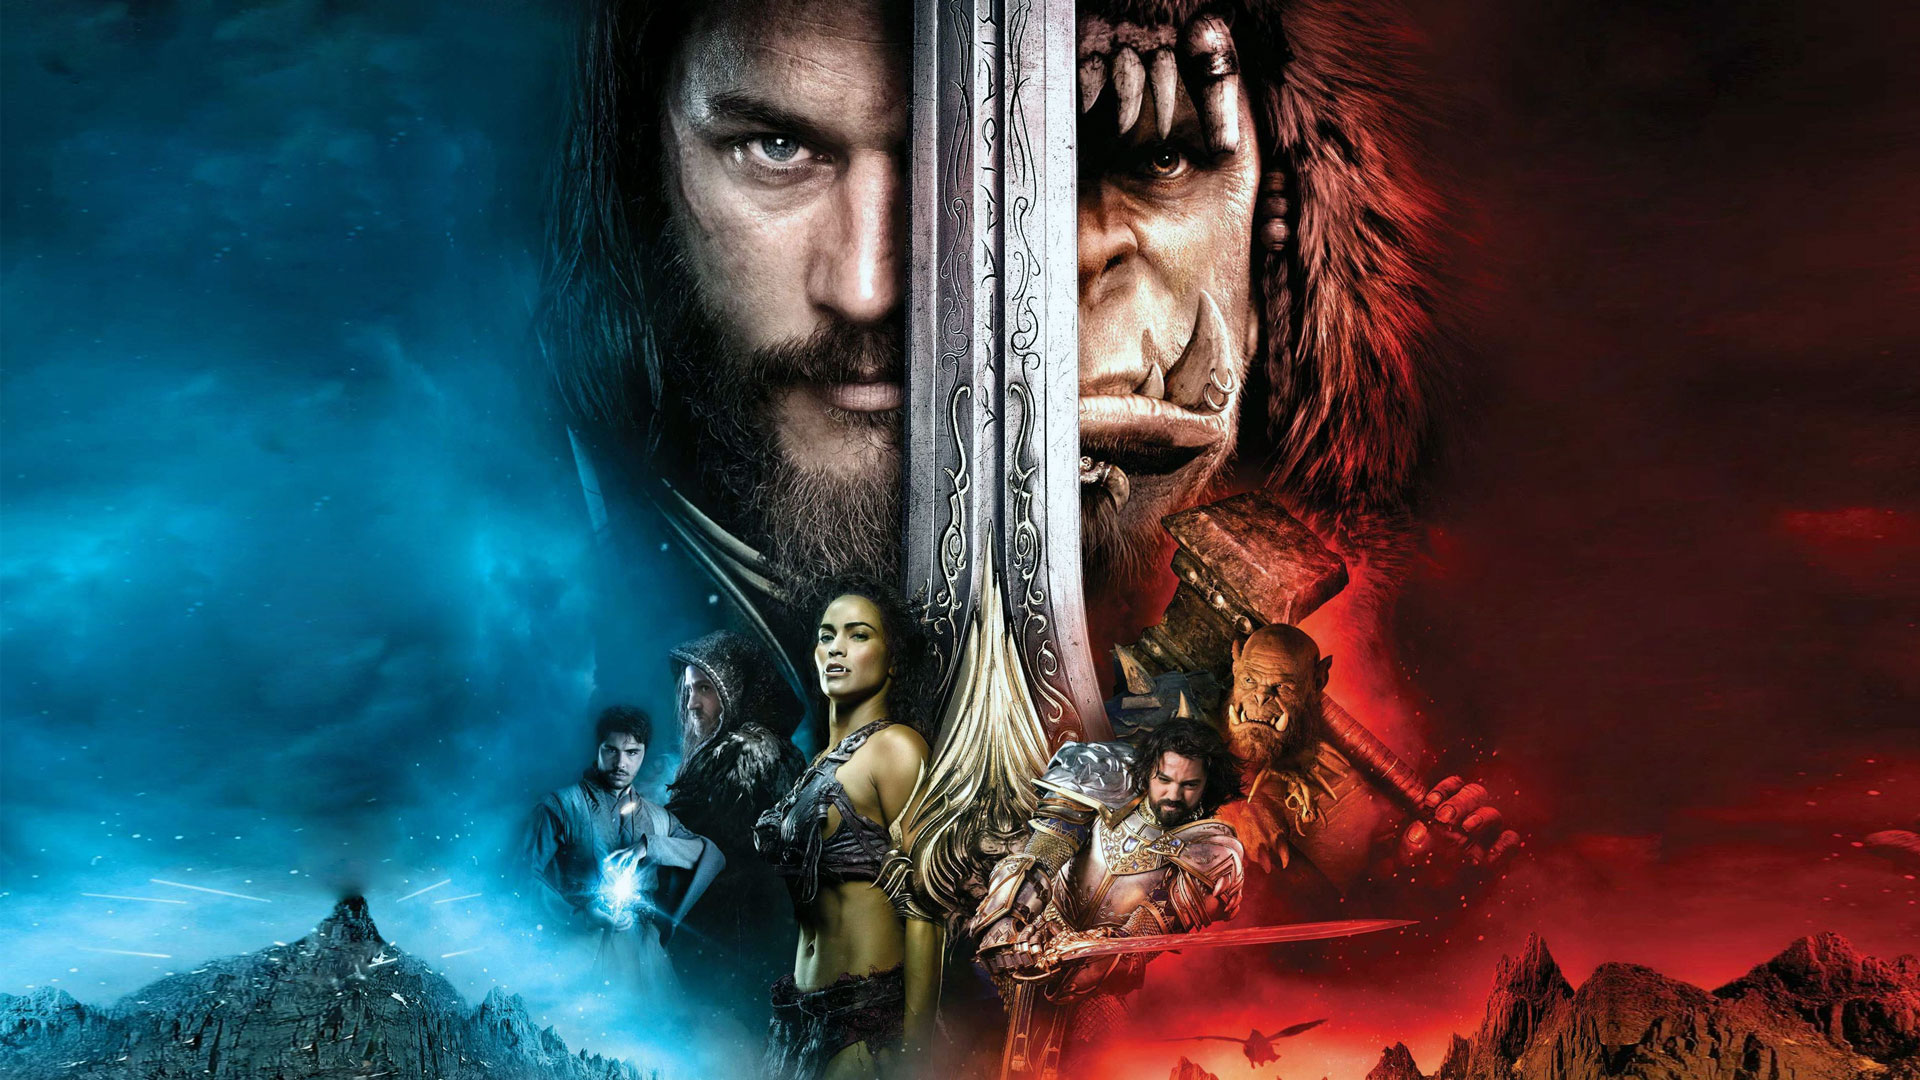 Warcraft Movie Hd Hd Movies 4k Wallpapers Images